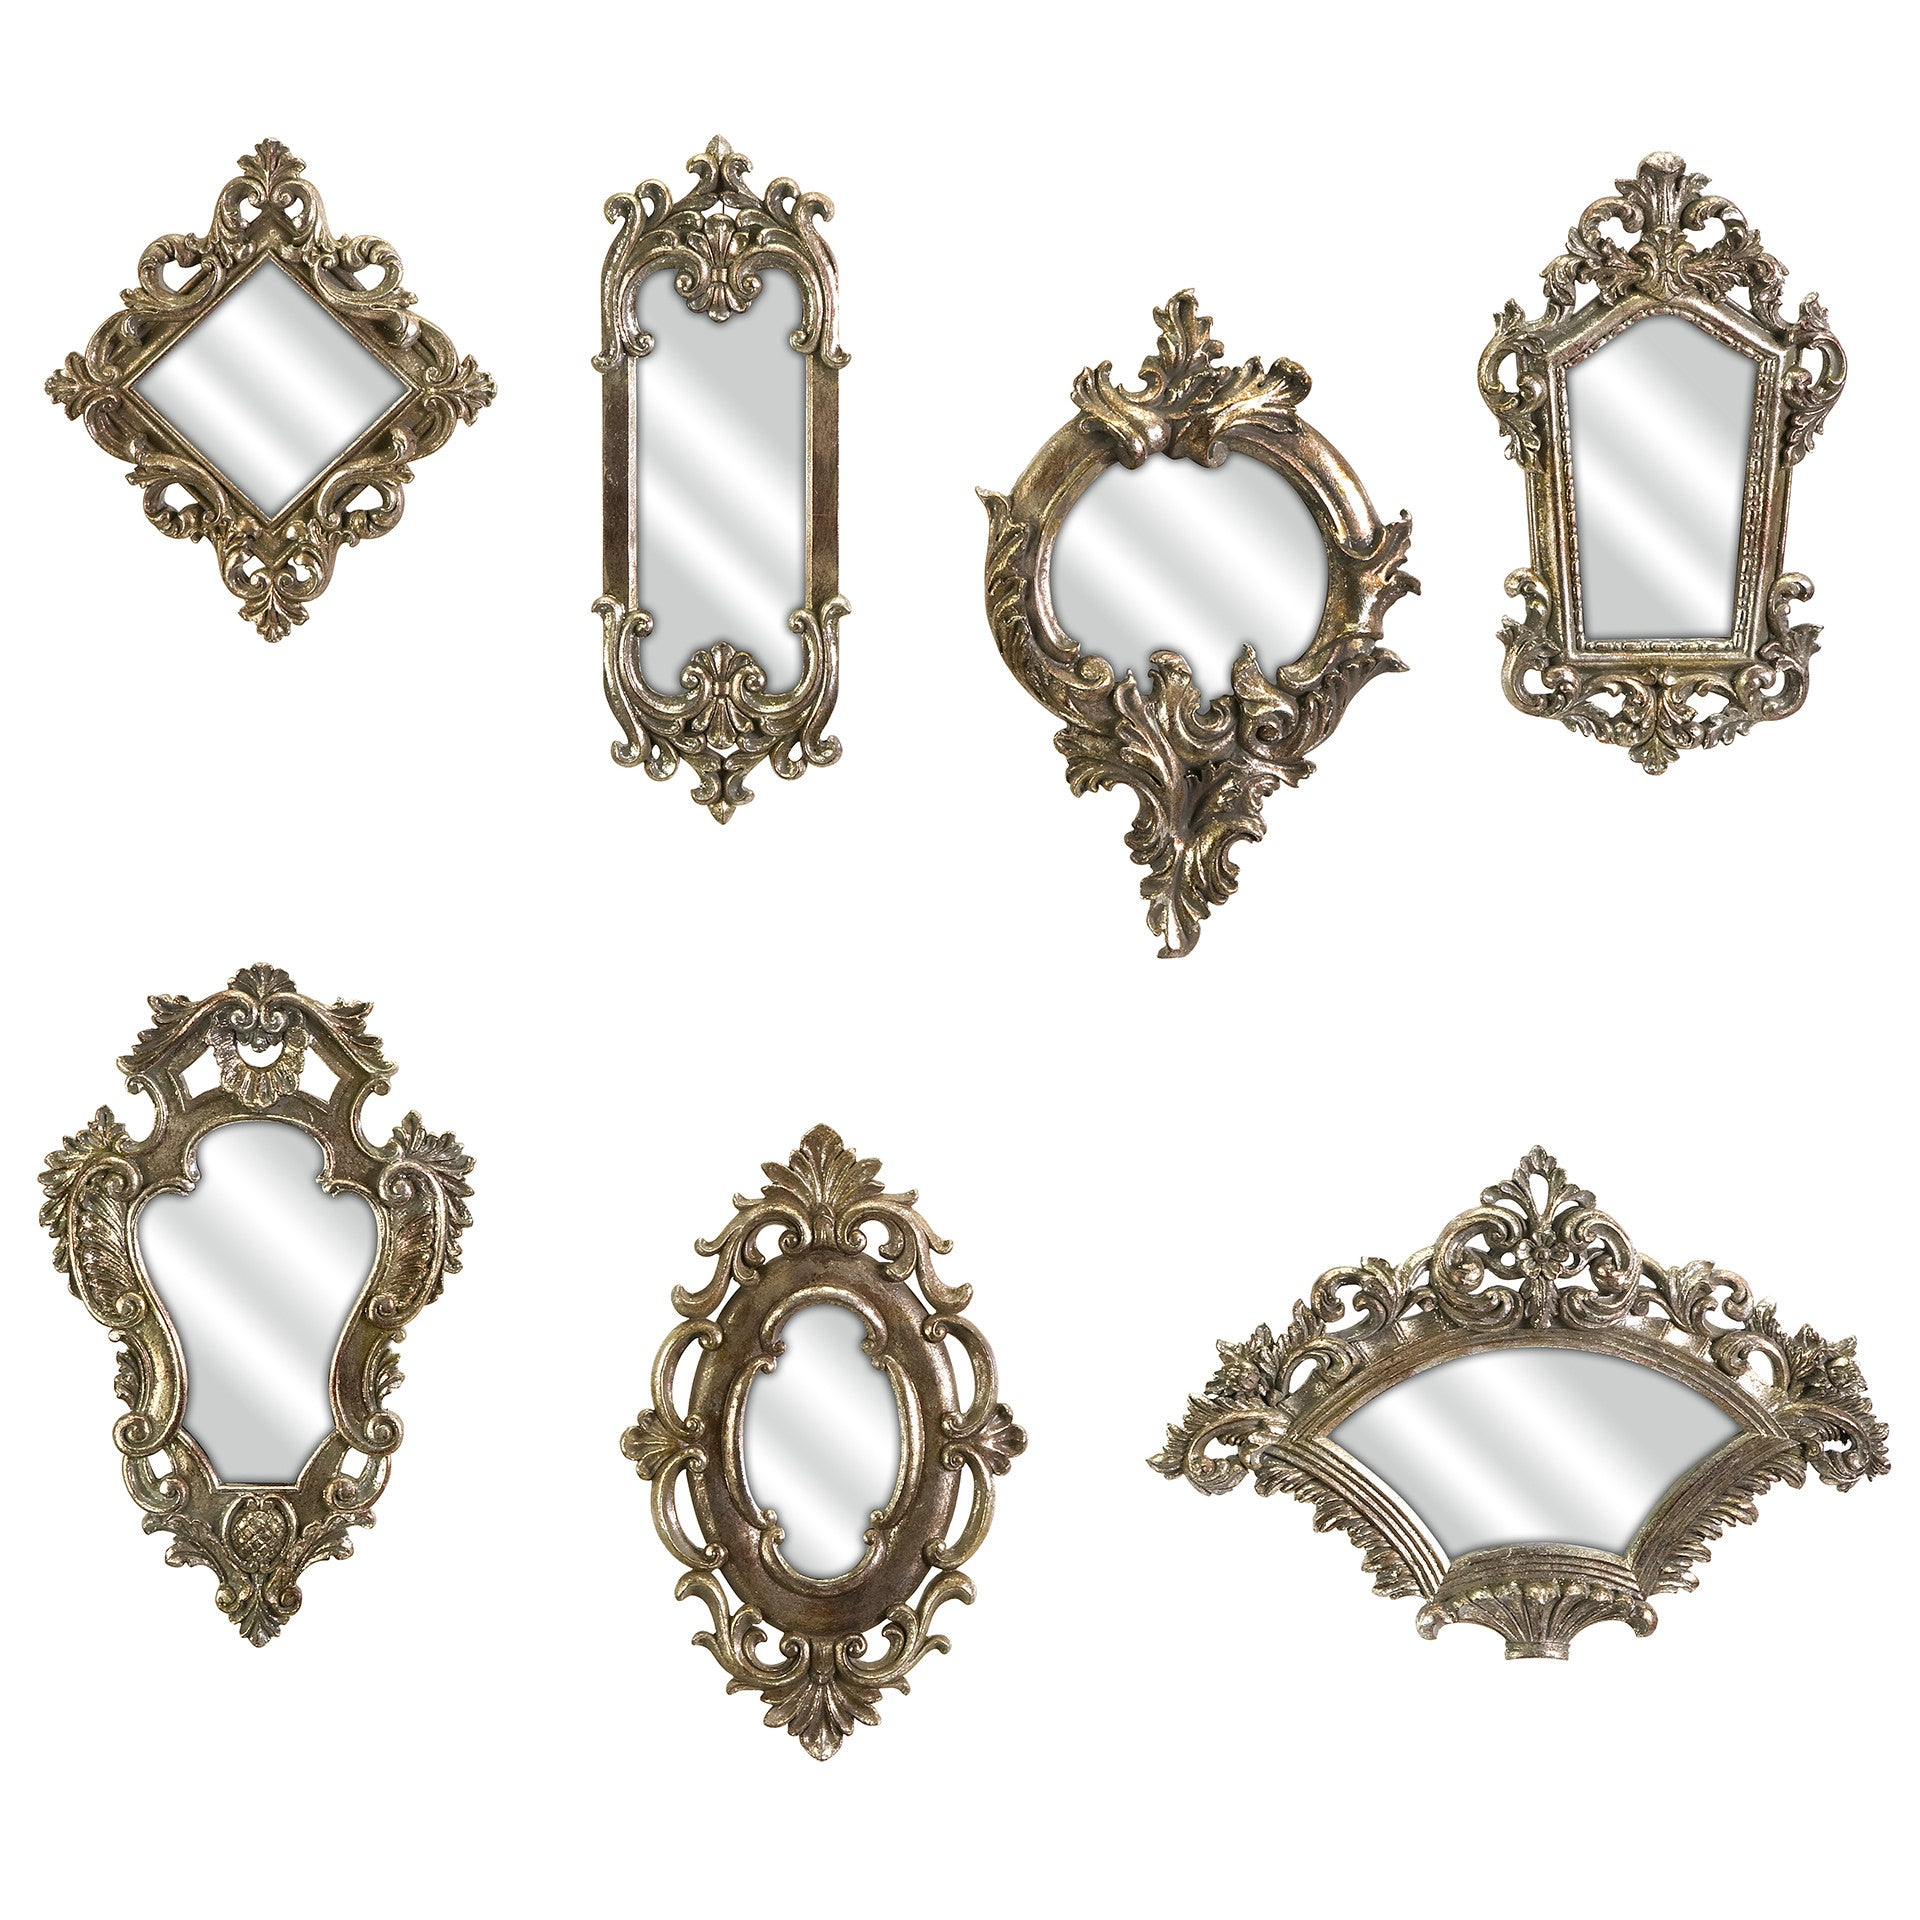 Victorian Style Mirrors - Set of 7